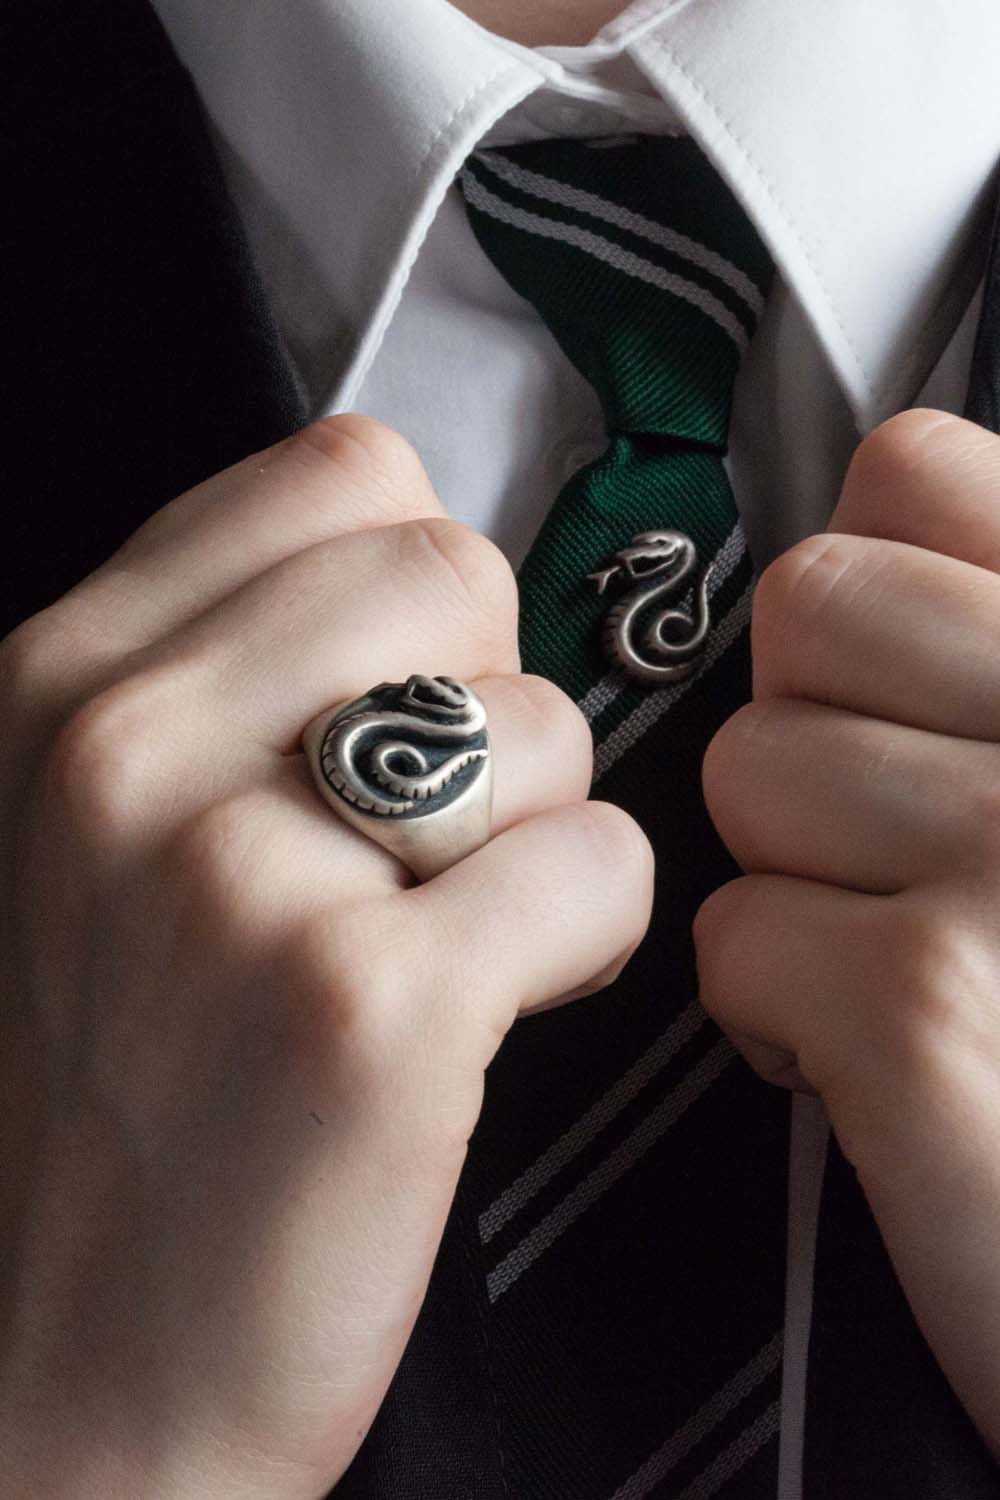 Harry Potter Slytherin Ring & Tie Pin handmade by Catherine Hills Jewellery